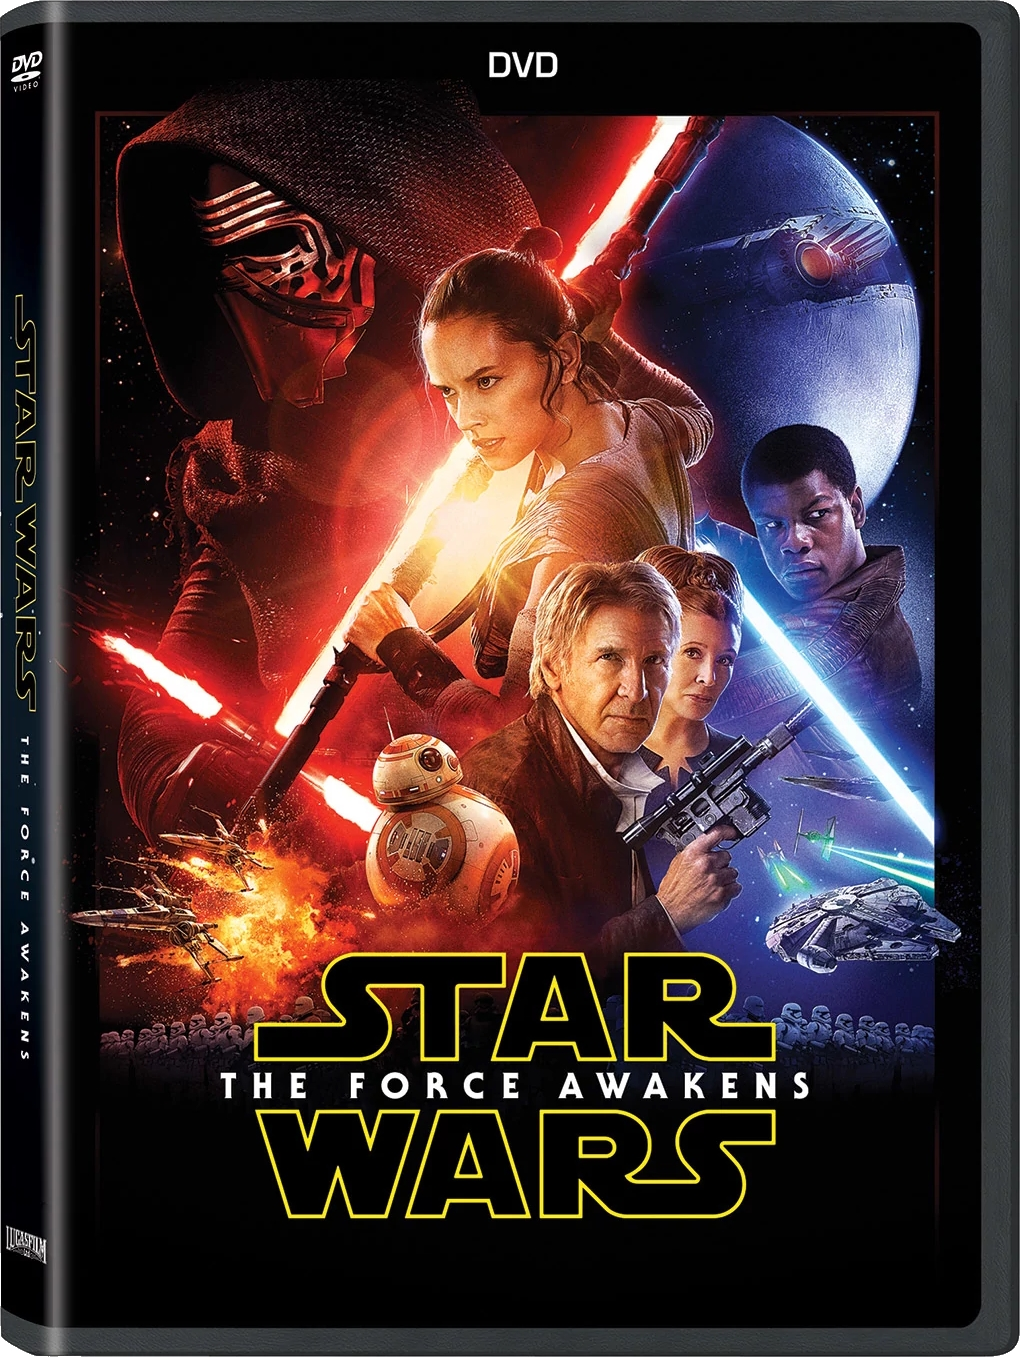 Star Wars: The Force Awakens (video)